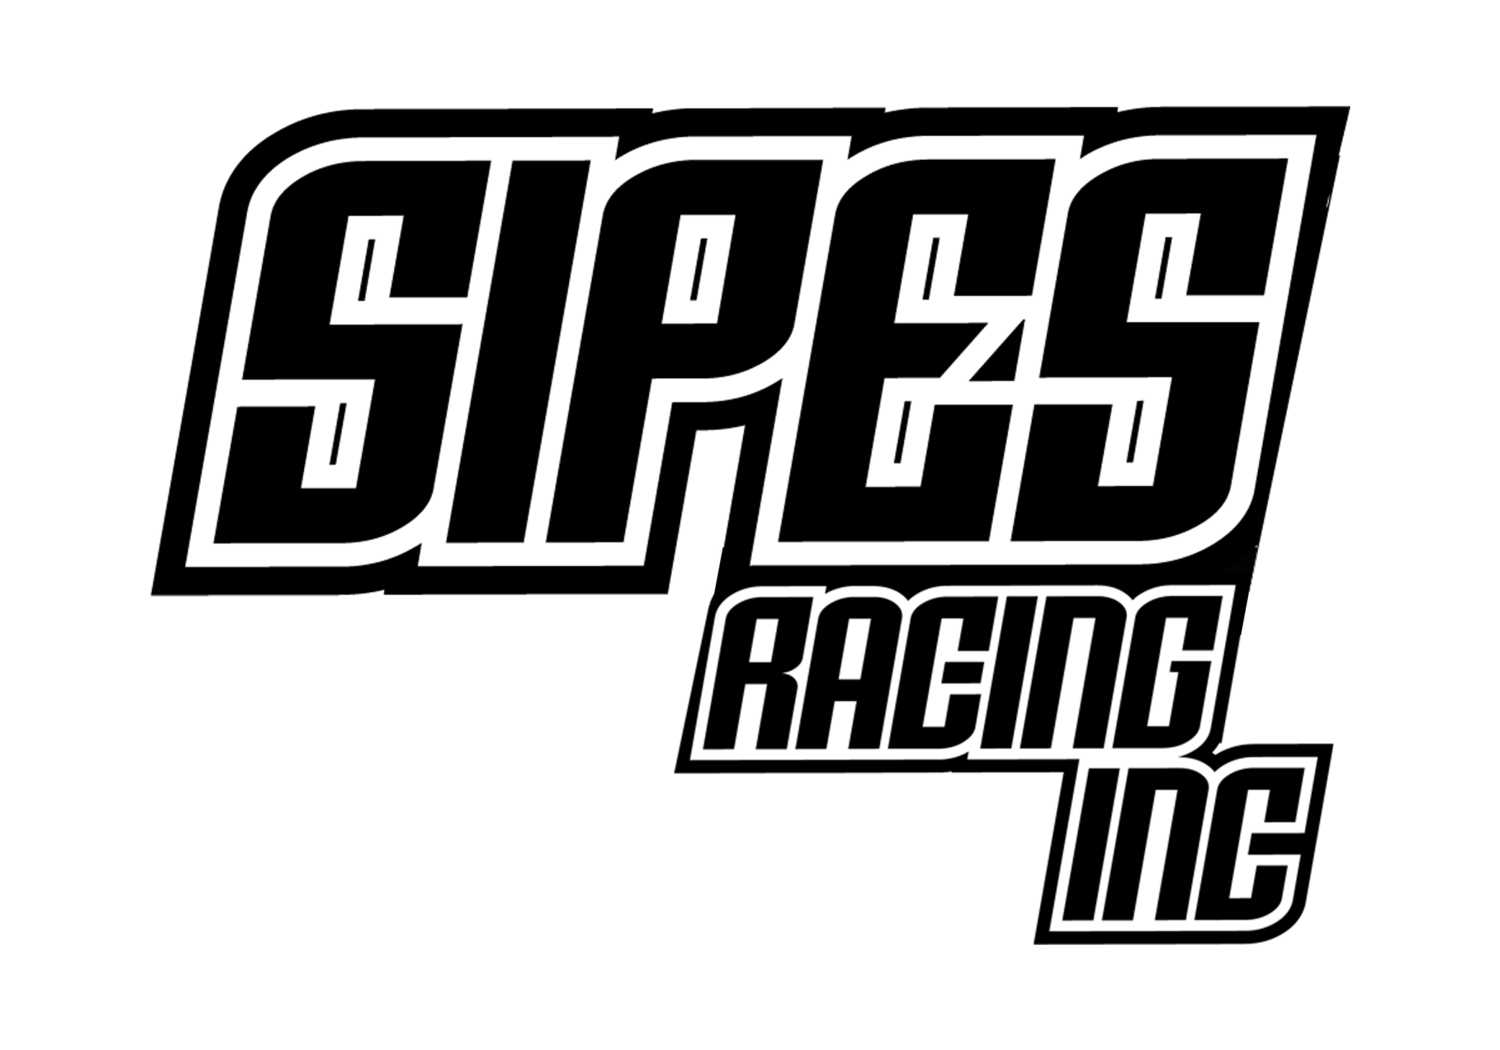 Sipes Racing, Inc.